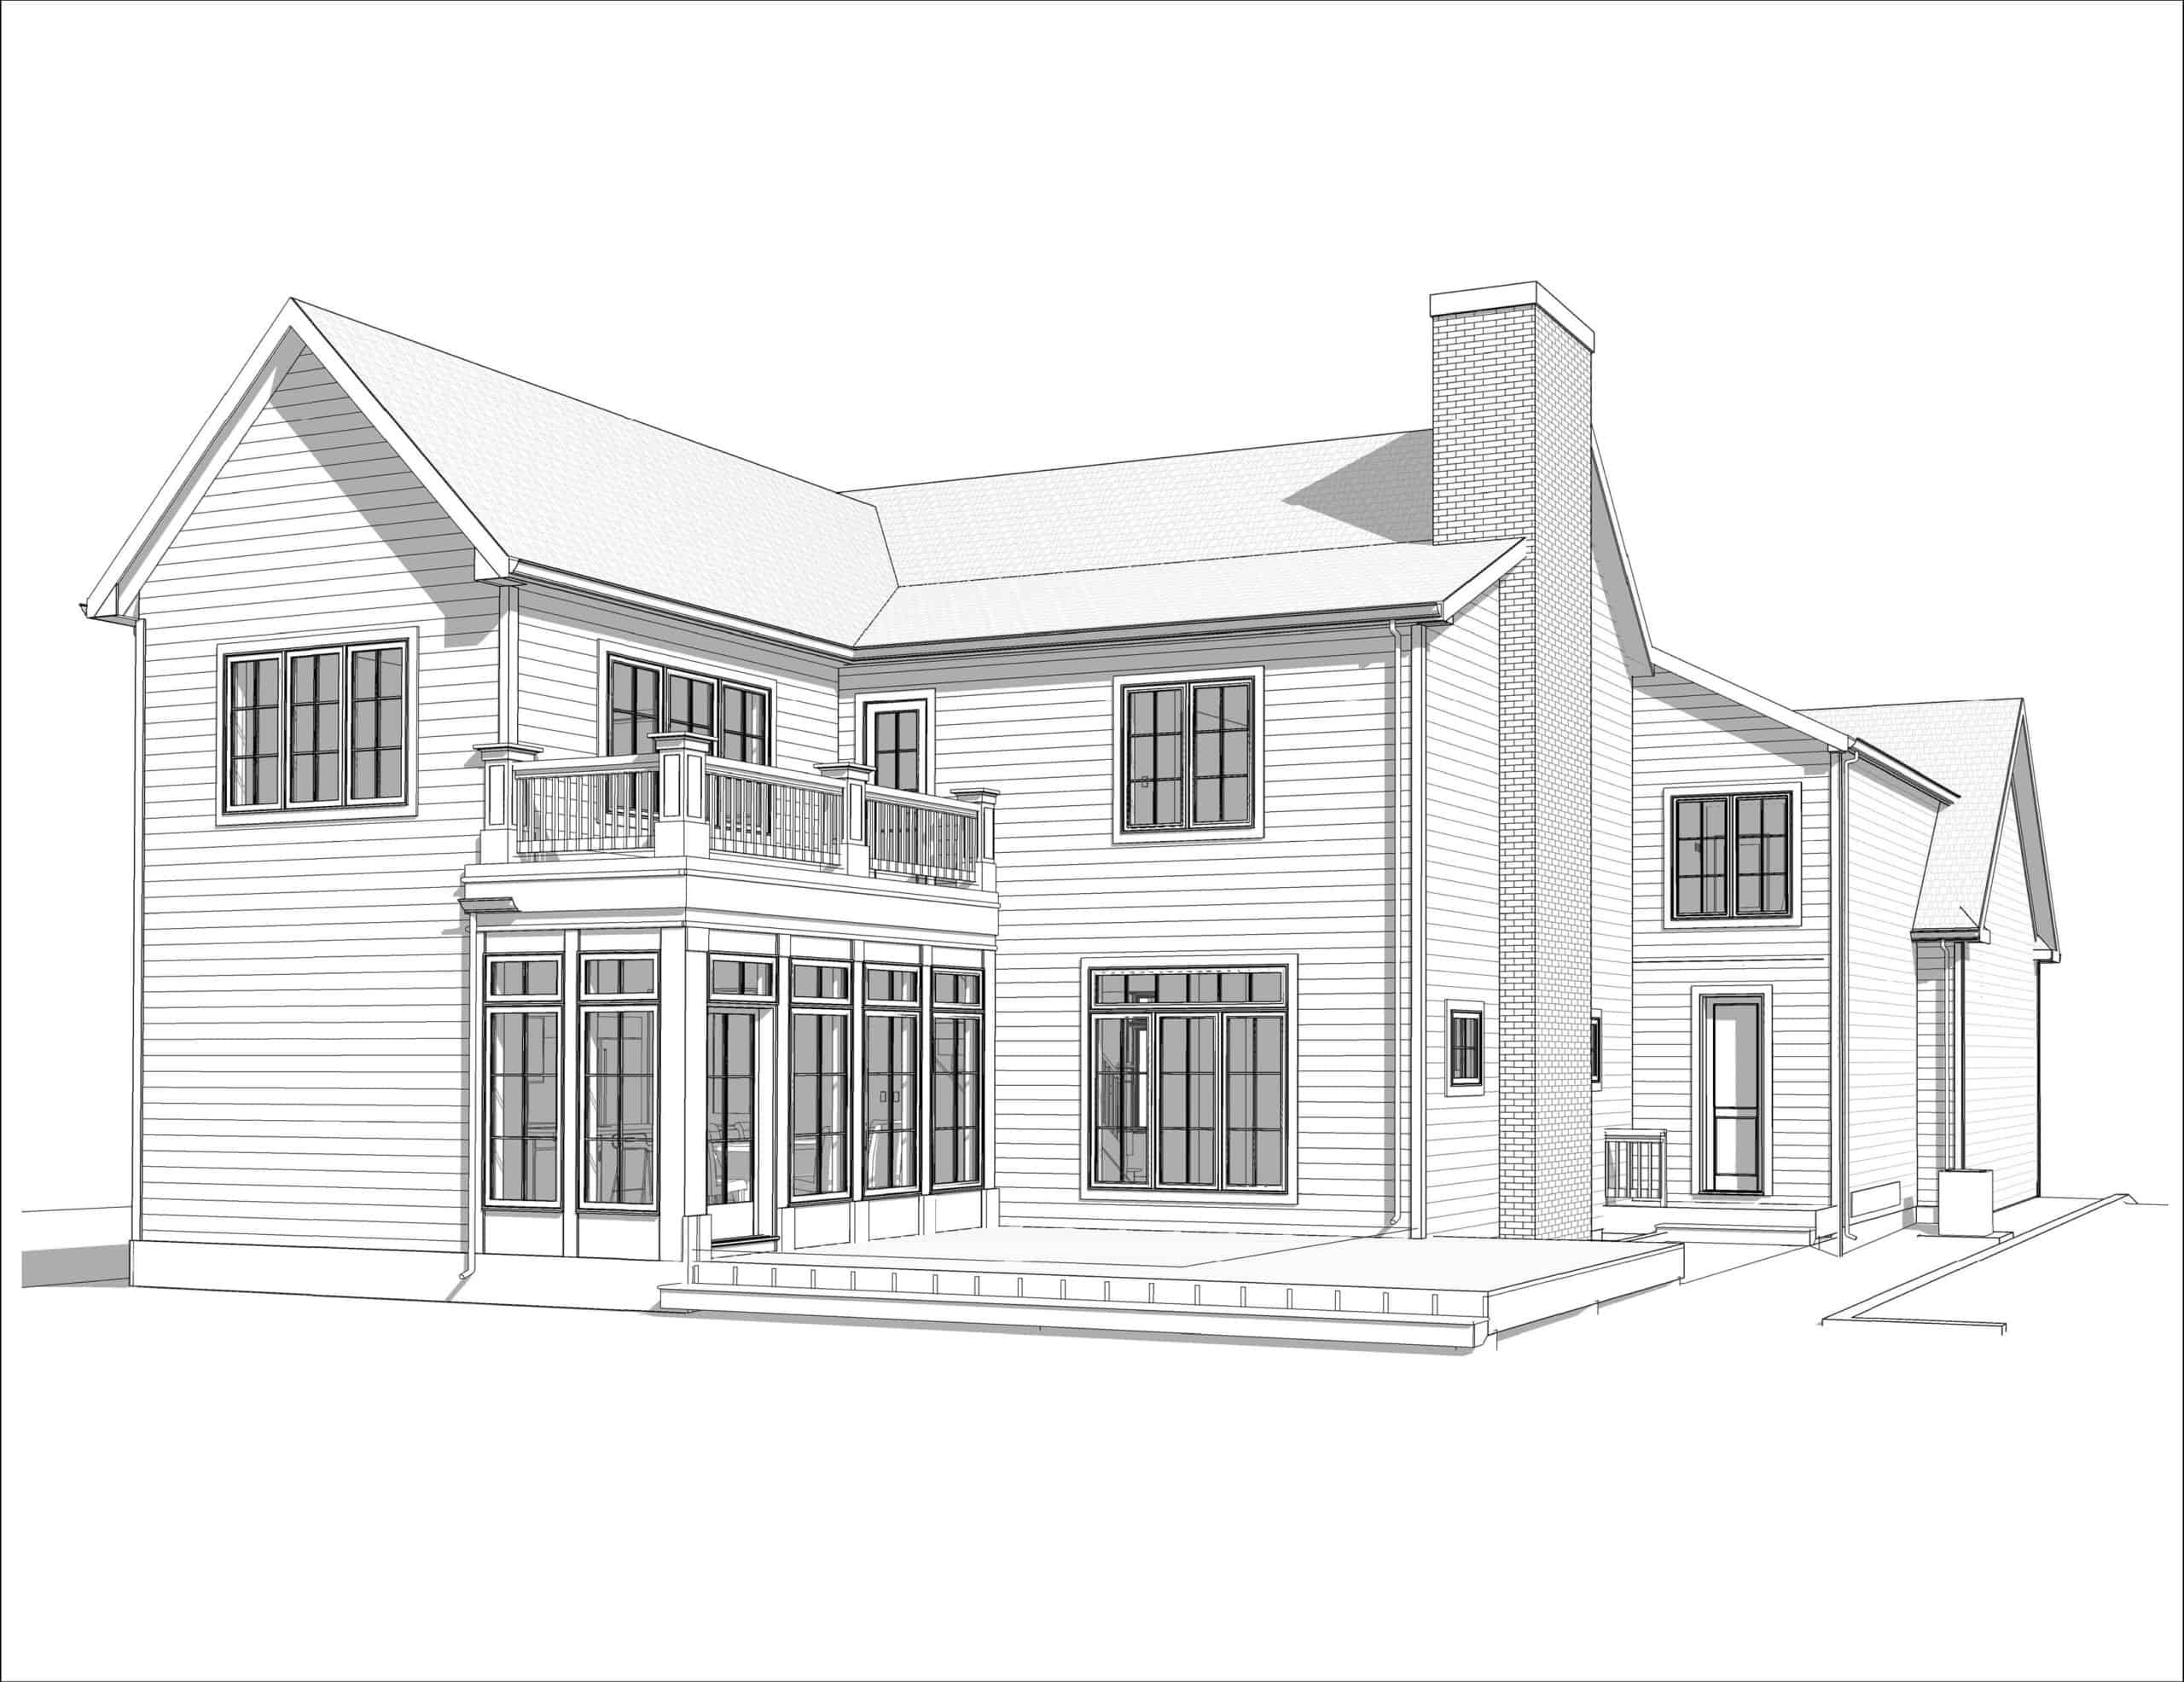 Varsity Modern Colonial rear perspective